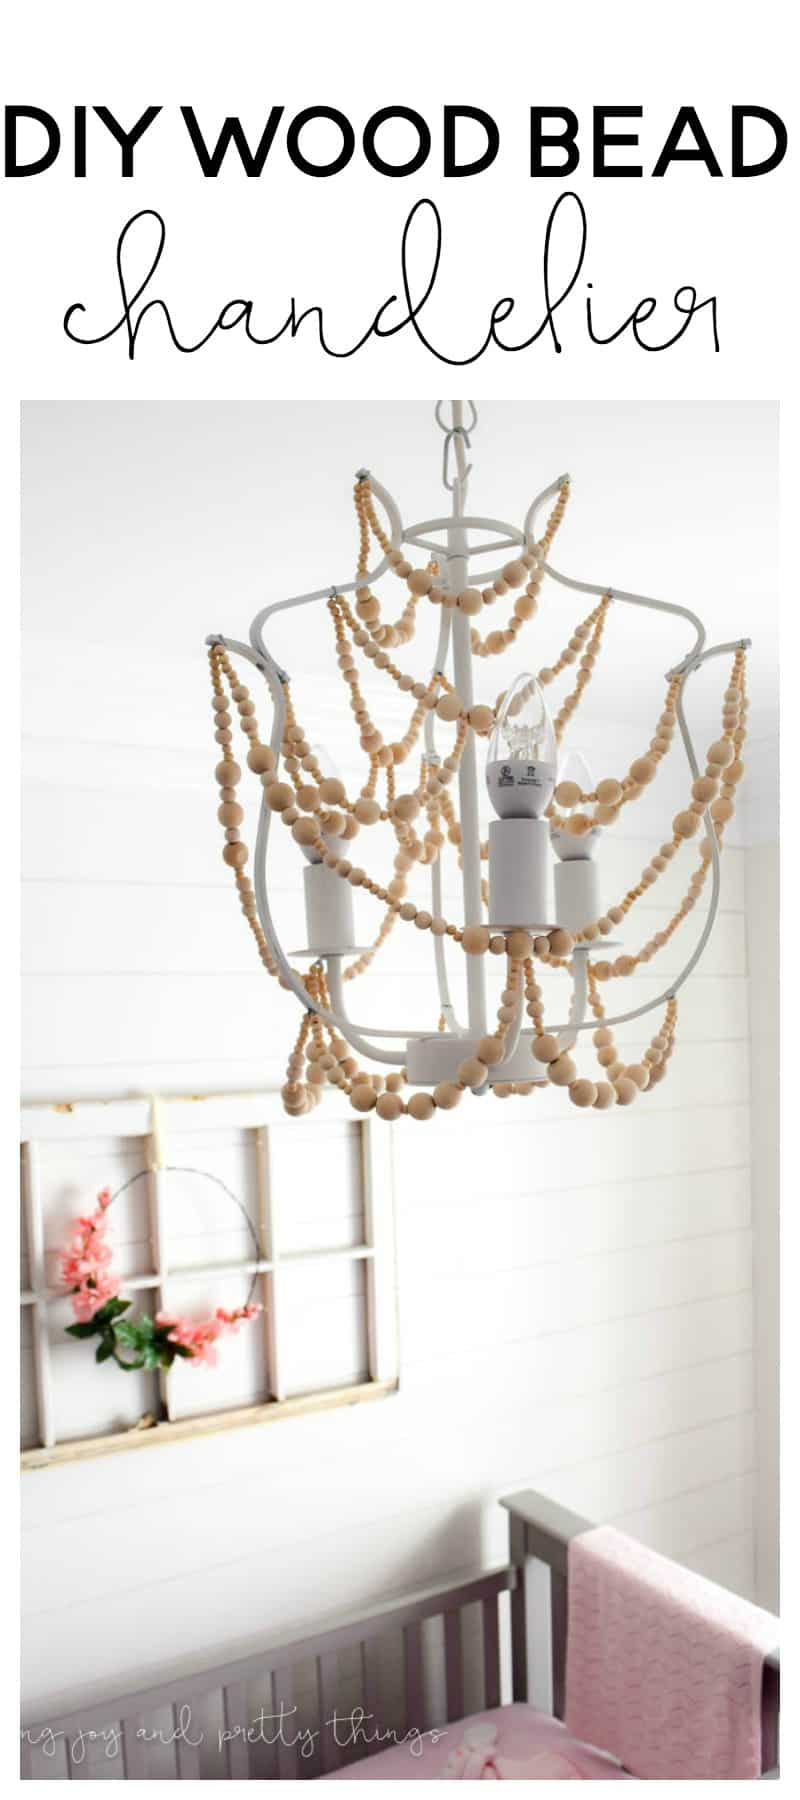 easy diy to make a wood bead chandelier the perfect diy craft to add farmhouse